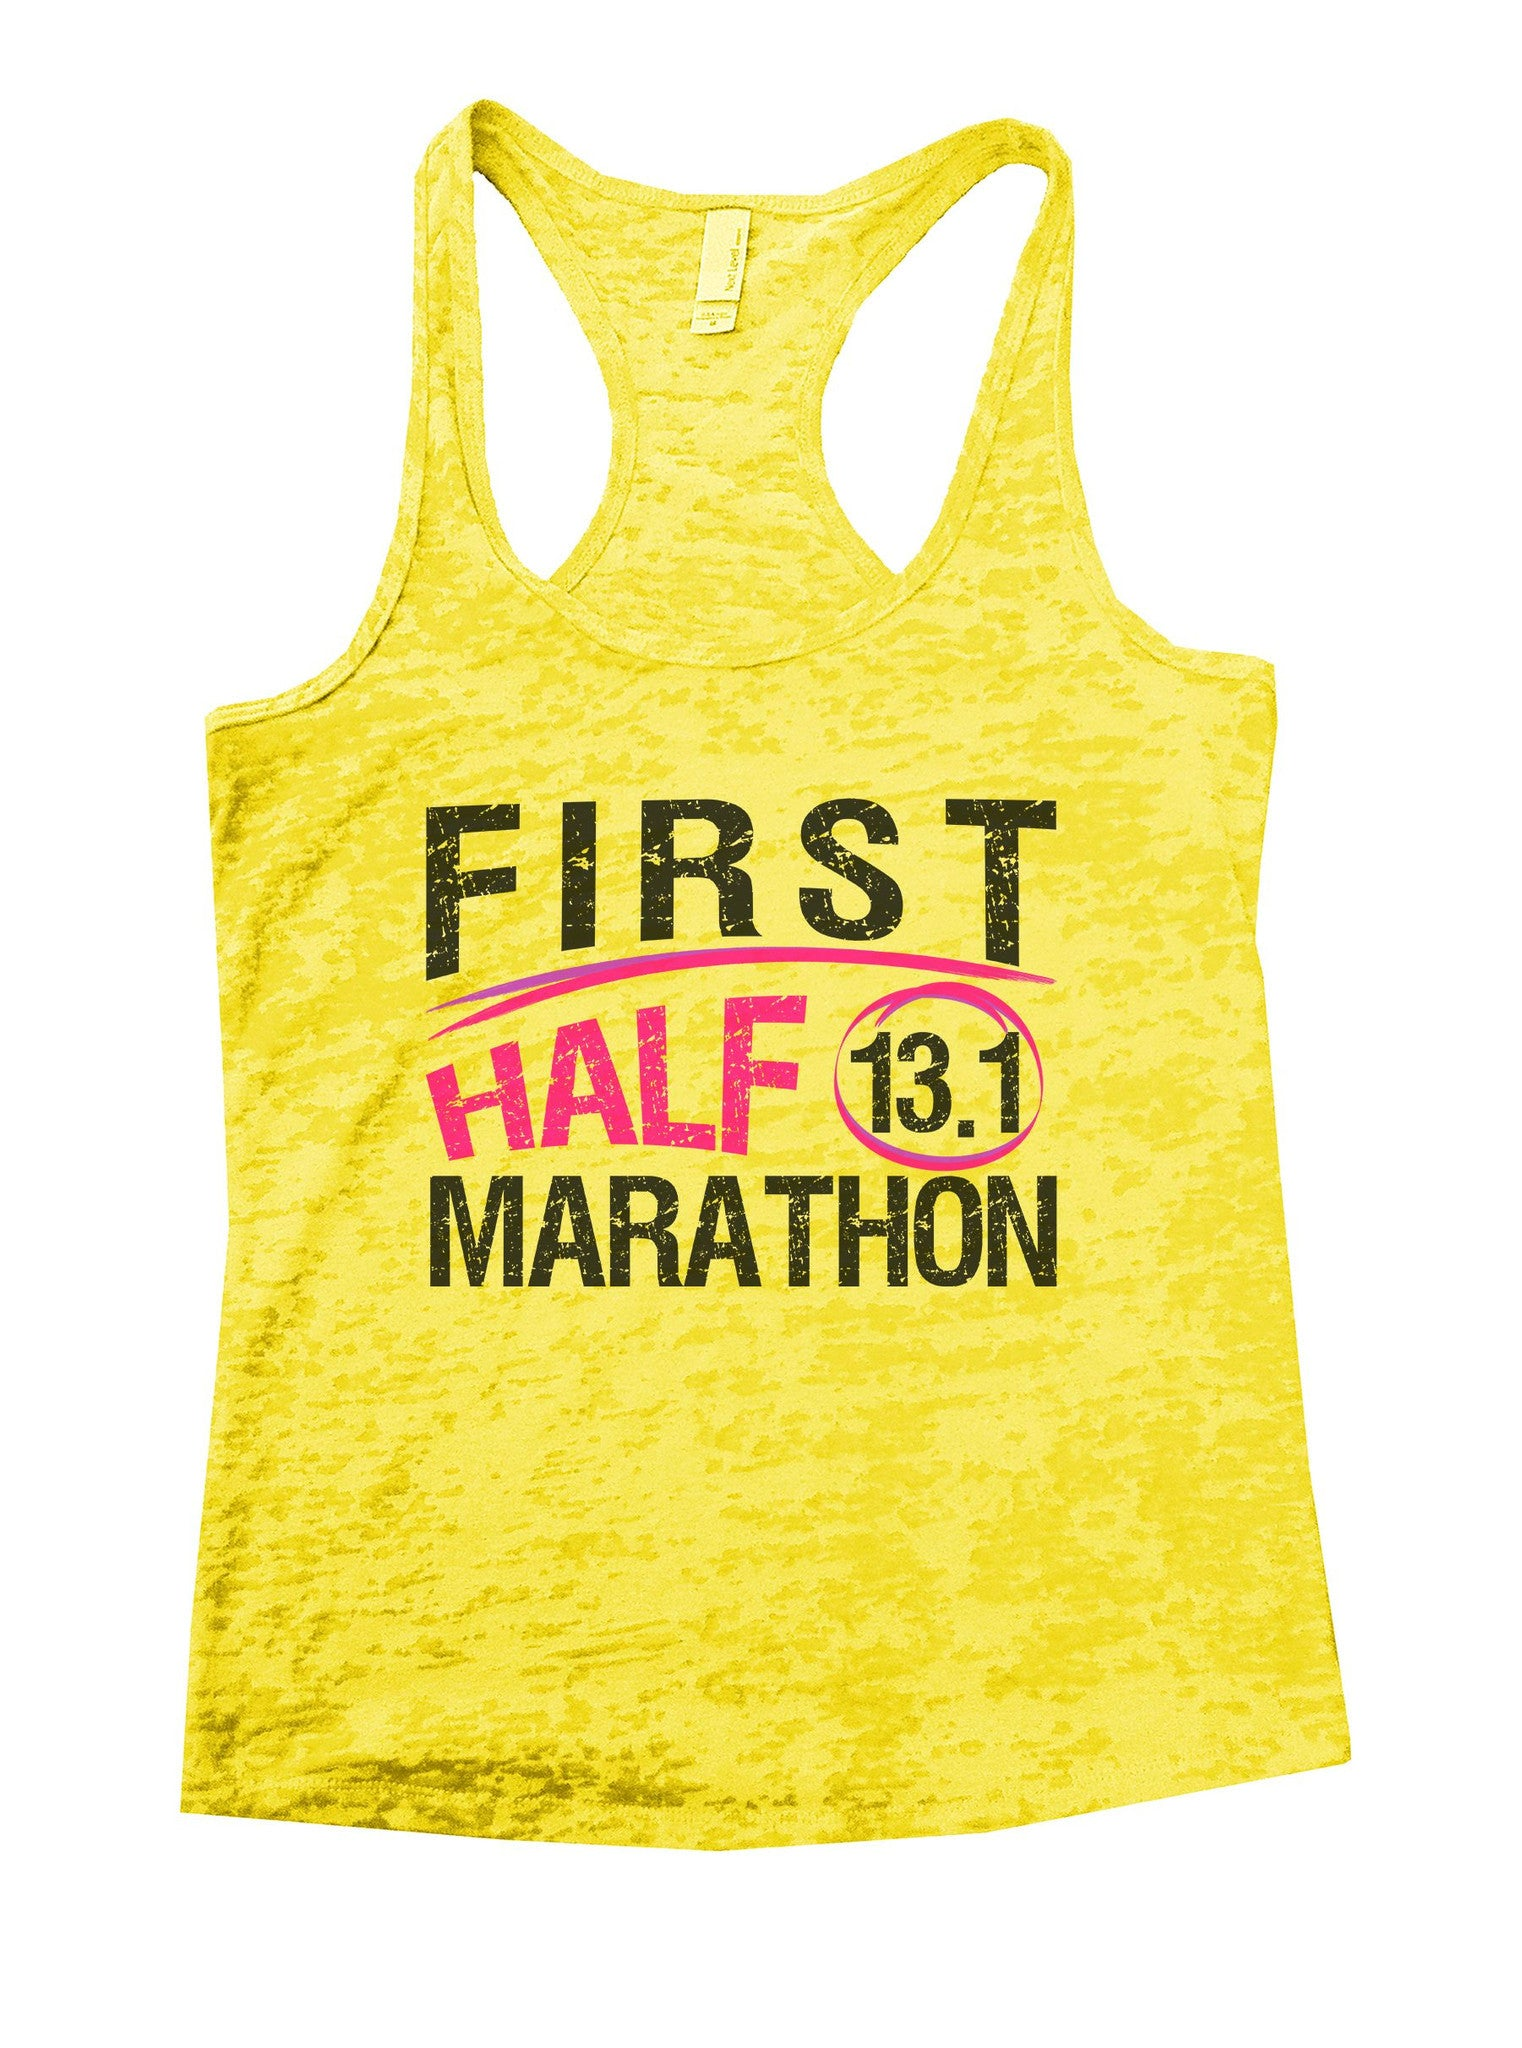 First Half 13.1 Marathon Burnout Tank Top By BurnoutTankTops.com - 1035 - Funny Shirts Tank Tops Burnouts and Triblends  - 7